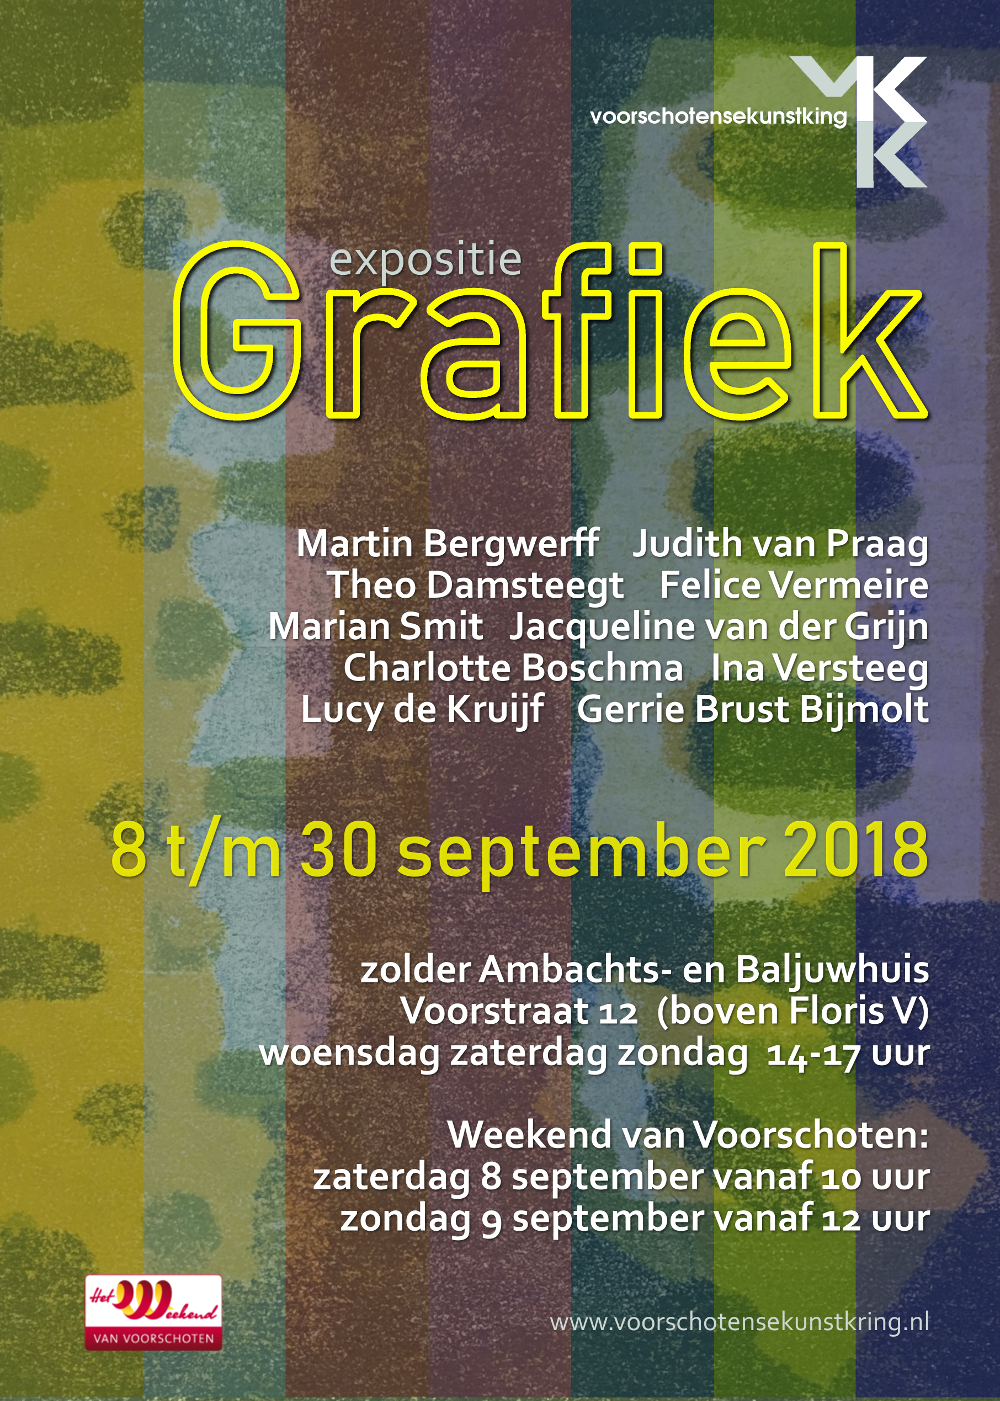 Grafiek expositie september 2018